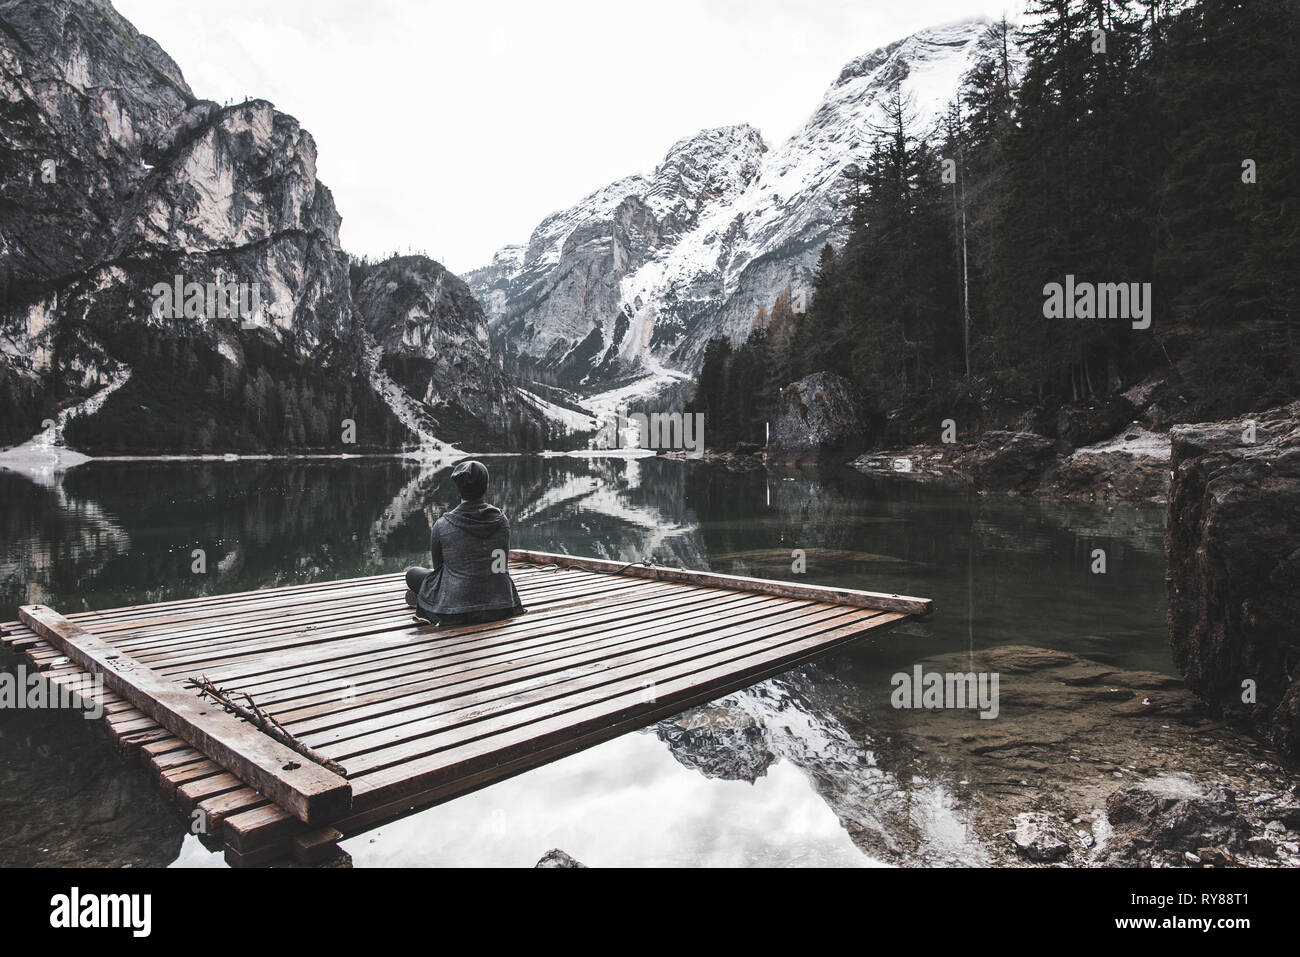 Back view of male sitting on wooden float boat between amazing lake and high stone mountains in Italy - Stock Image